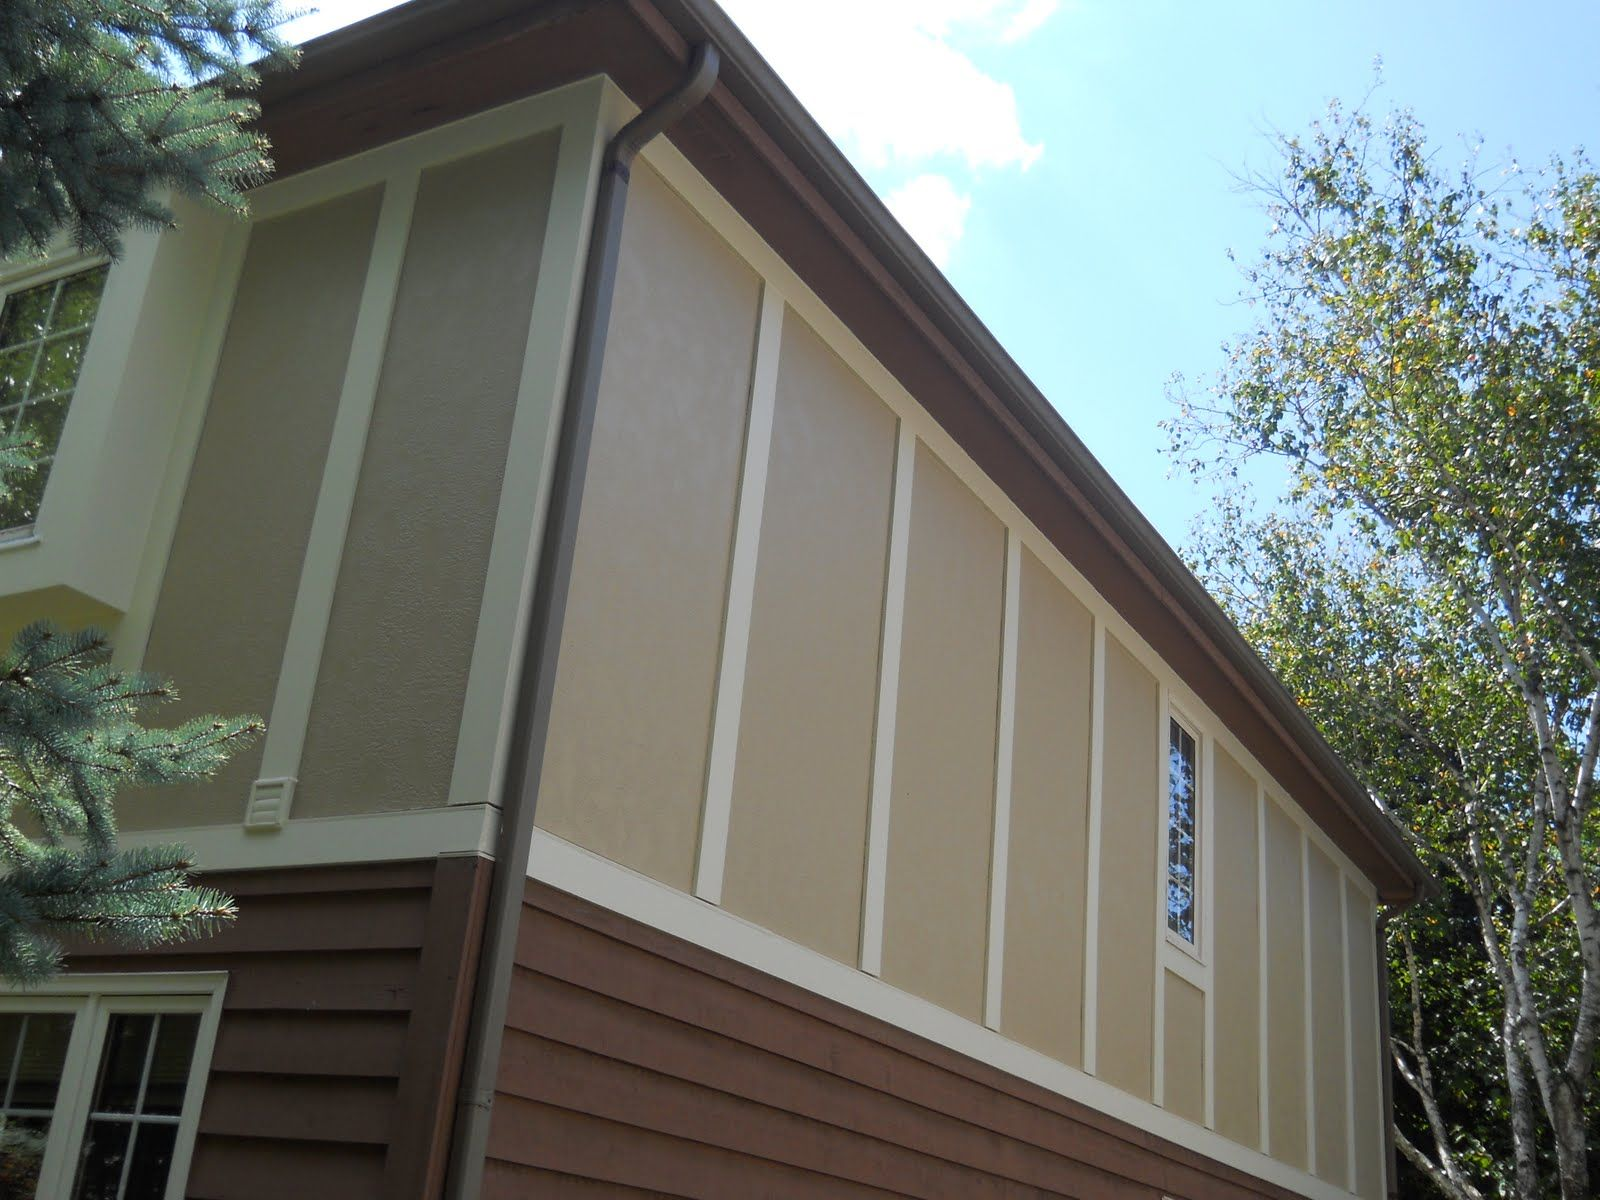 James Hardie Stucco Panels Siding Stucco Siding